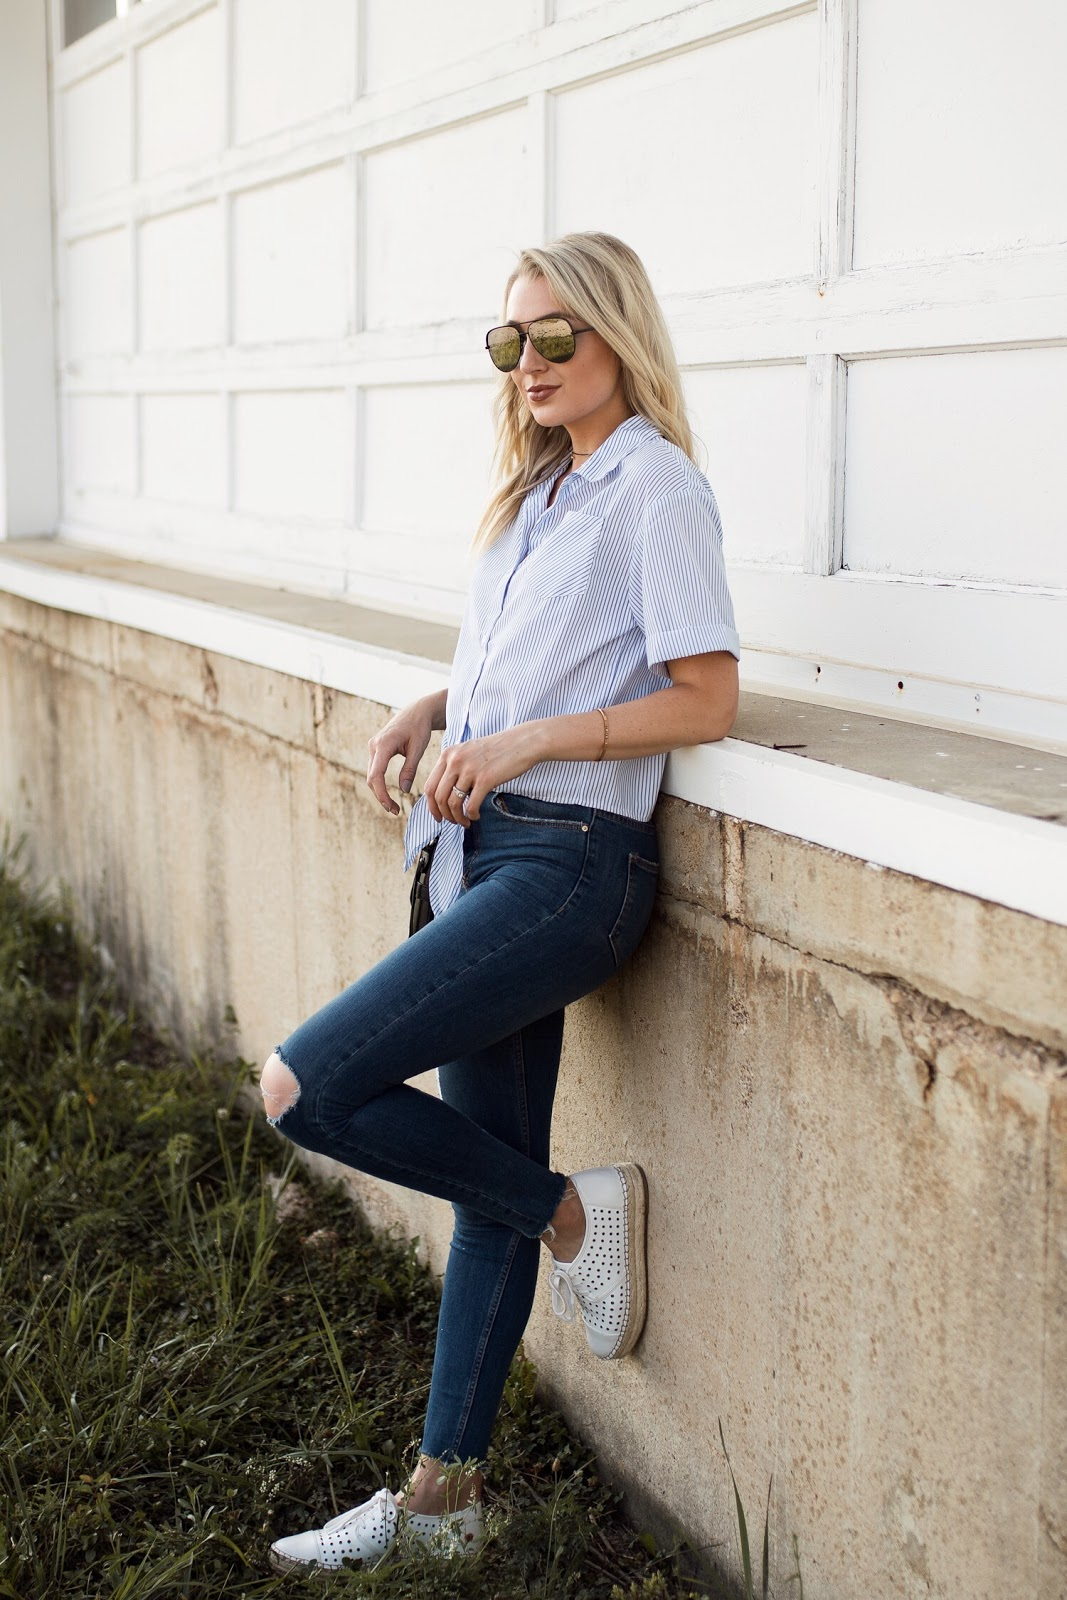 summer casual: button down, skinny jeans, espadrilles